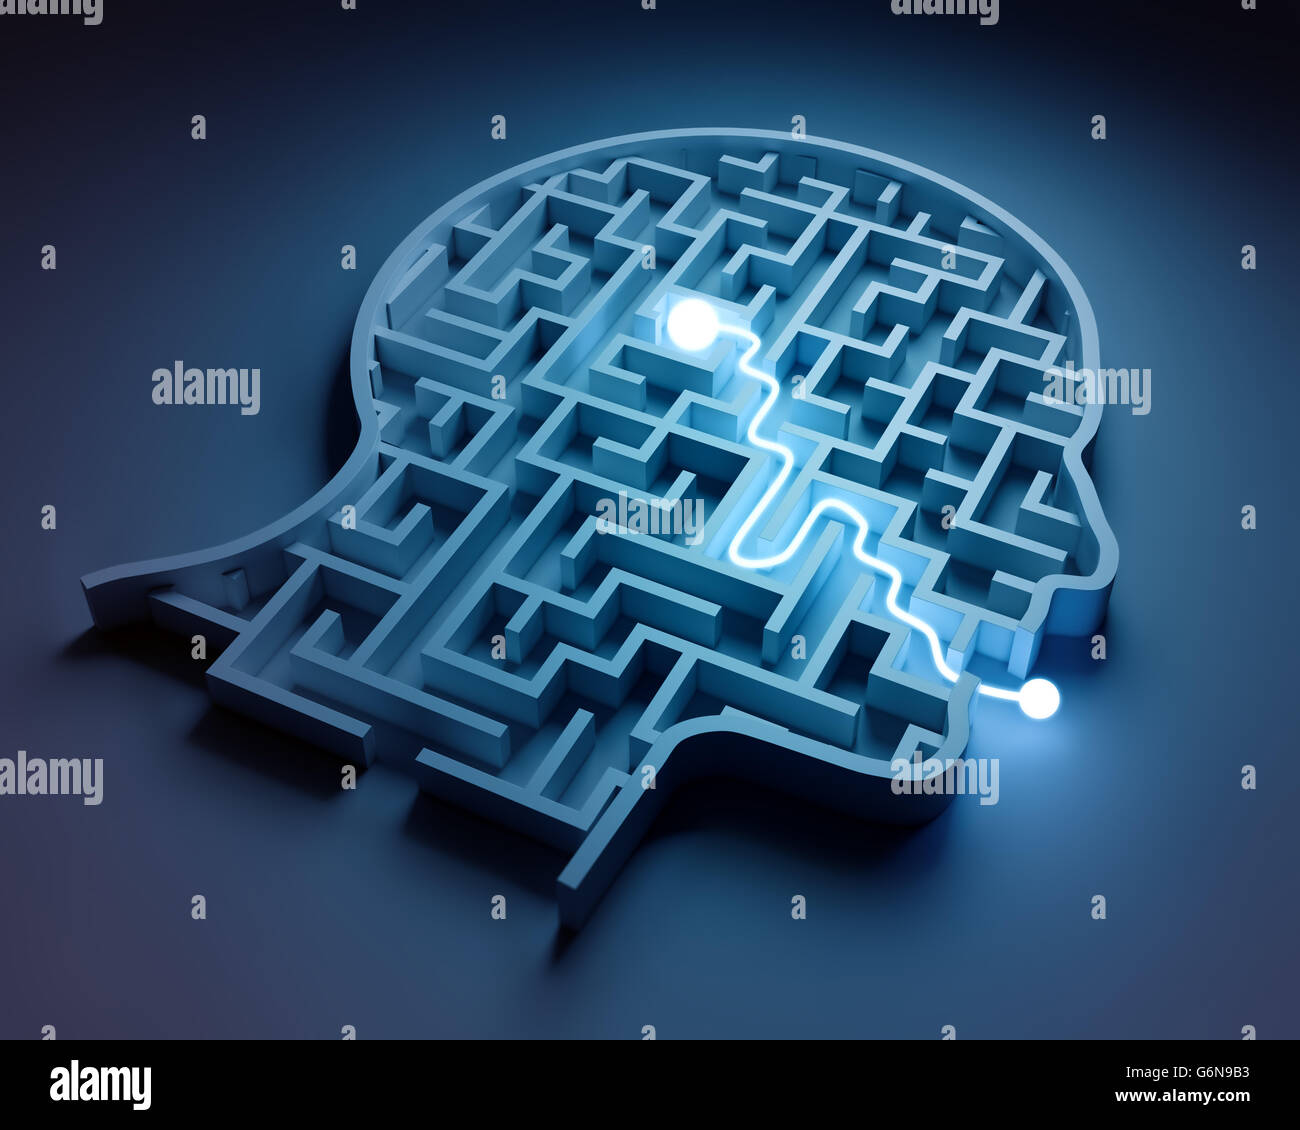 Maze inside a head - from brain to speech - Stock Image